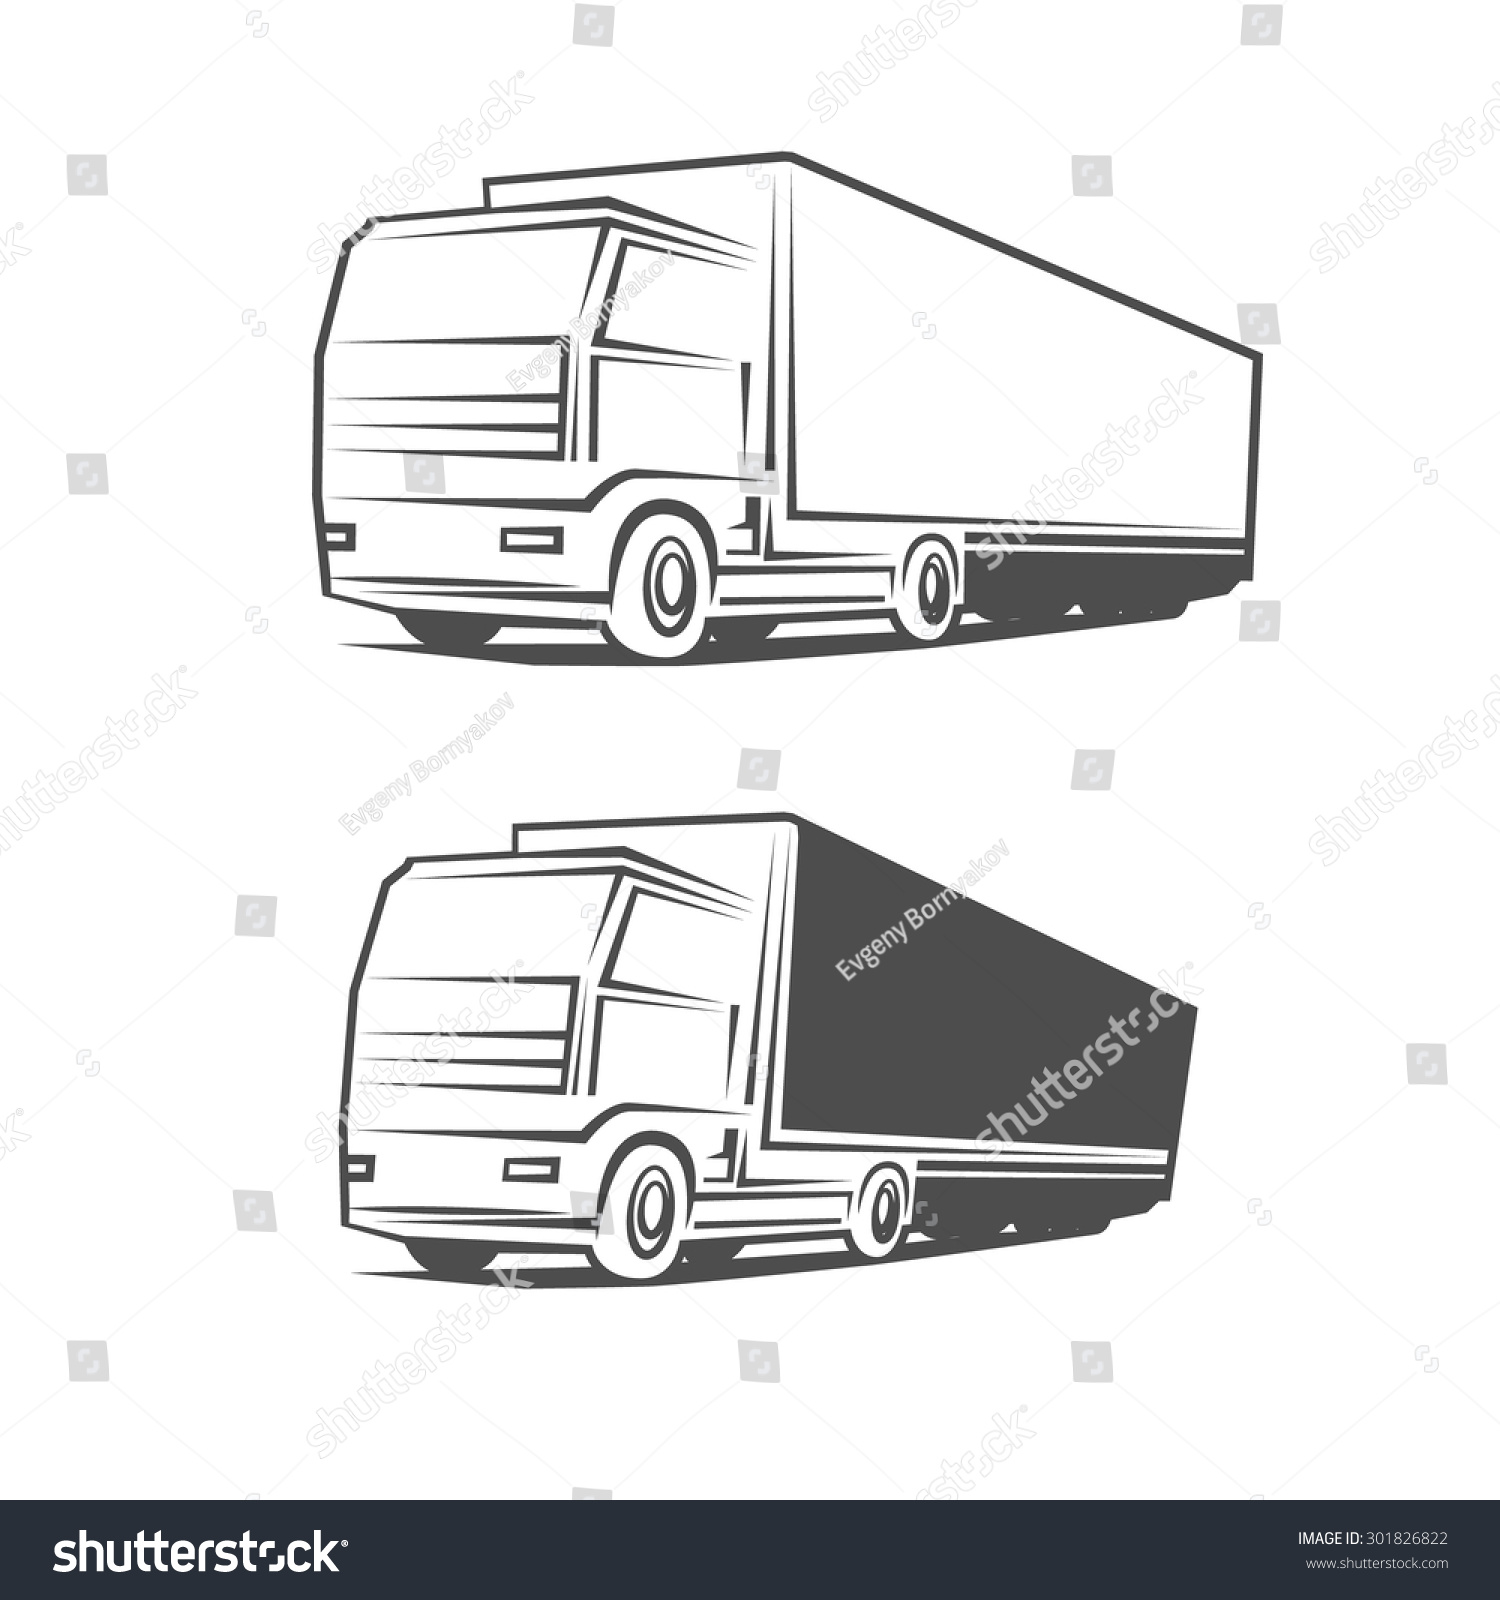 Logo truck design template simple vector stock vector 301826822 logo truck design template simple vector illustration pronofoot35fo Choice Image